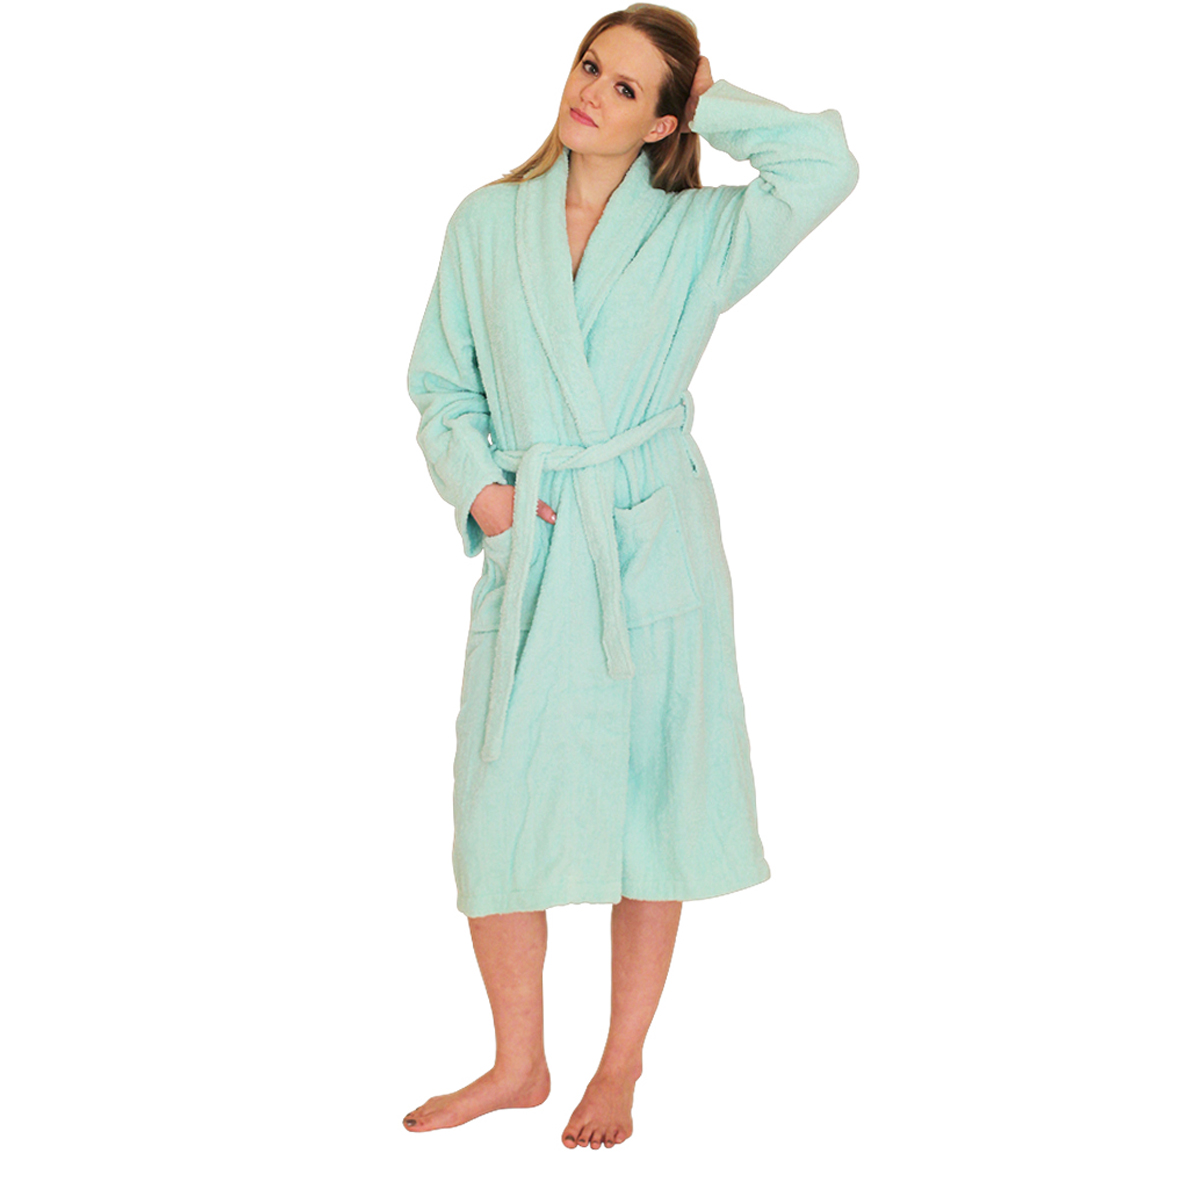 Bathrobe Terry Cloth Terrycloth Bath Robe 3999 For Women And